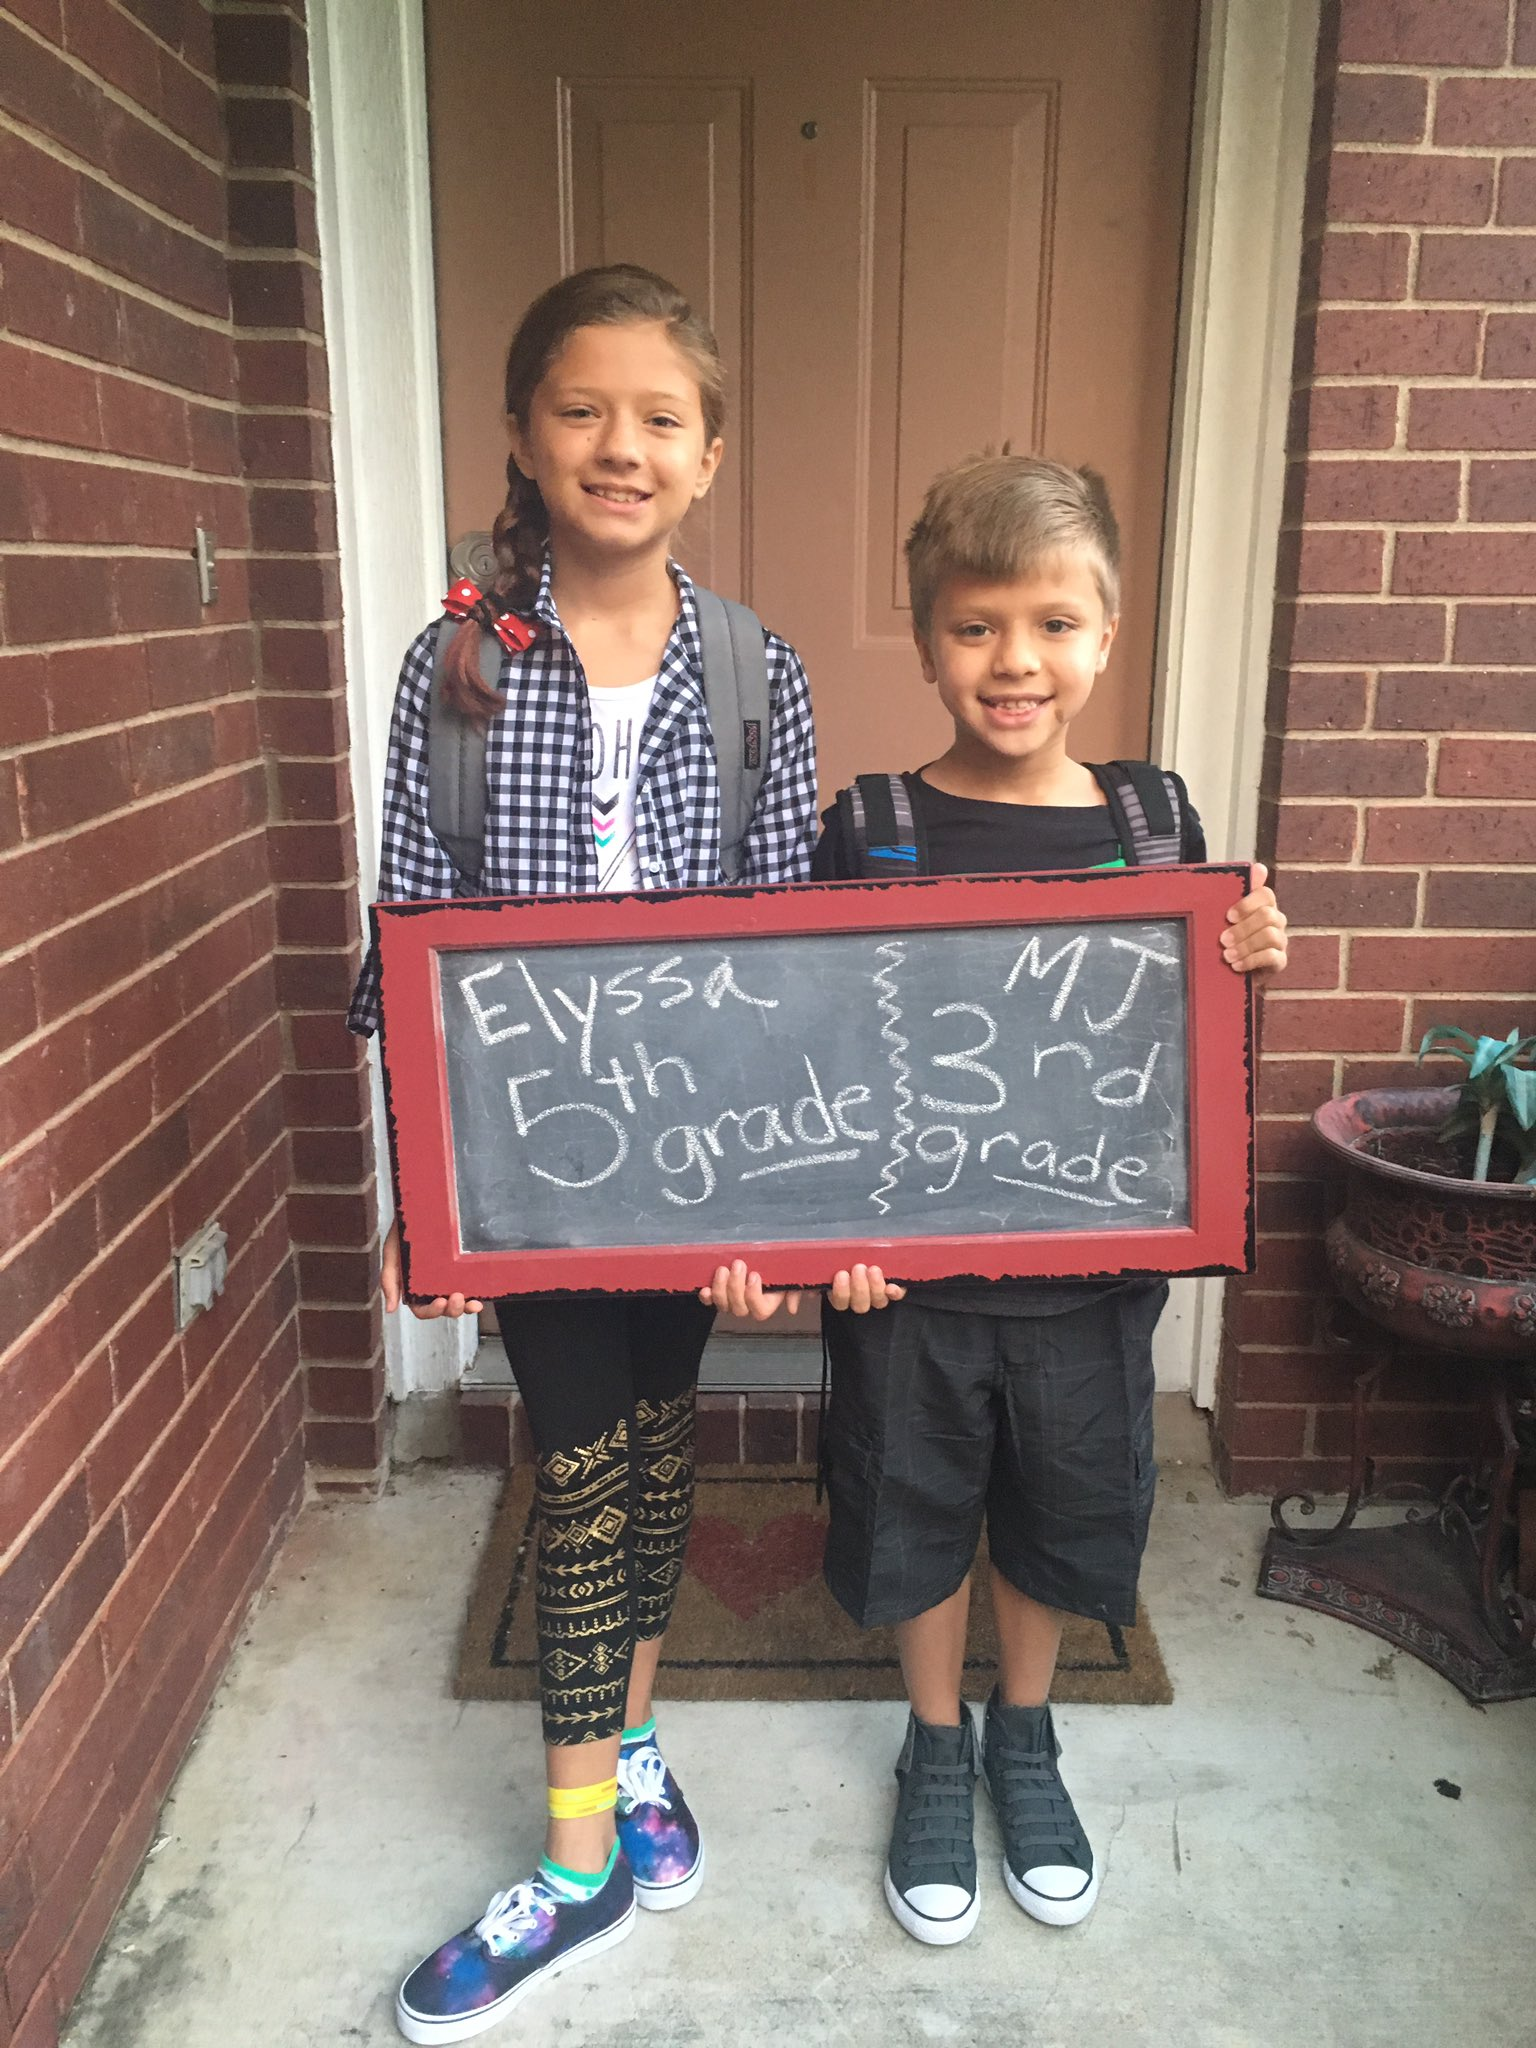 Happy first day of school everyone!! #BPECATS #firstdayofschool #awesome https://t.co/z4Kr5T2P6Y